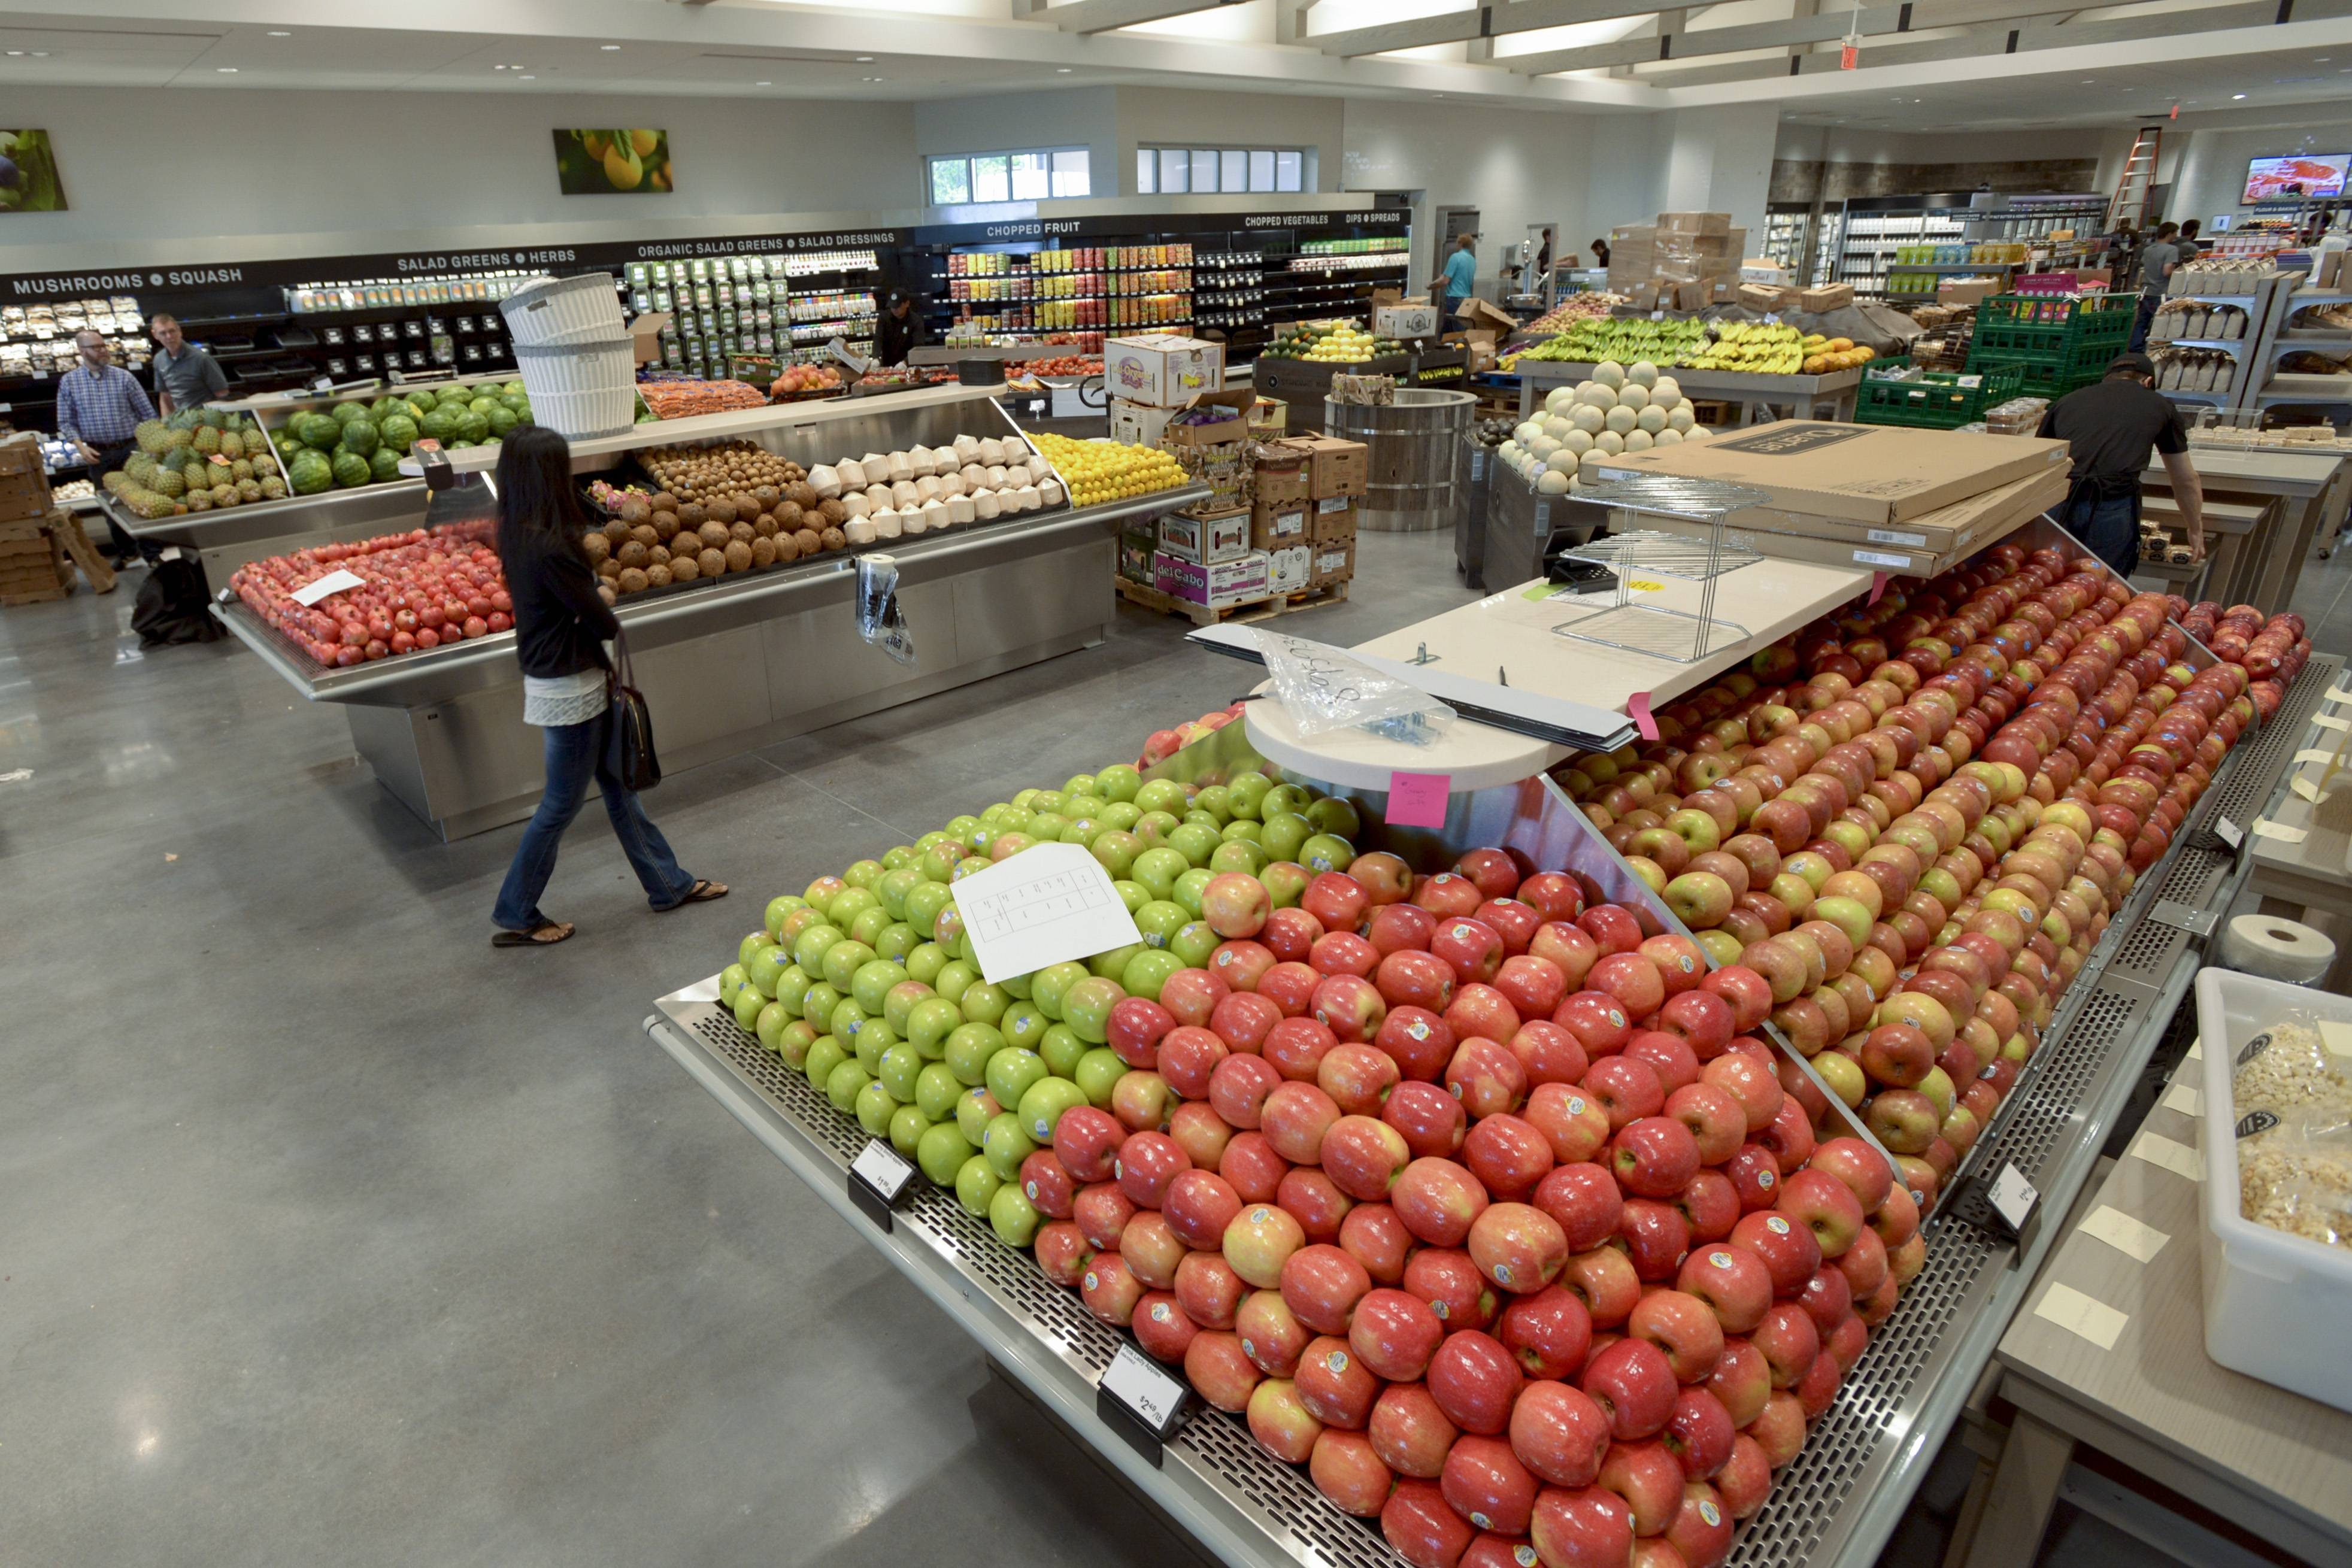 Standard Market in Naperville bustles with pre-opening activity Monday as employees stock produce before the first customers can begin shopping at 8 a.m. Tuesday at 1508 Aurora Ave.